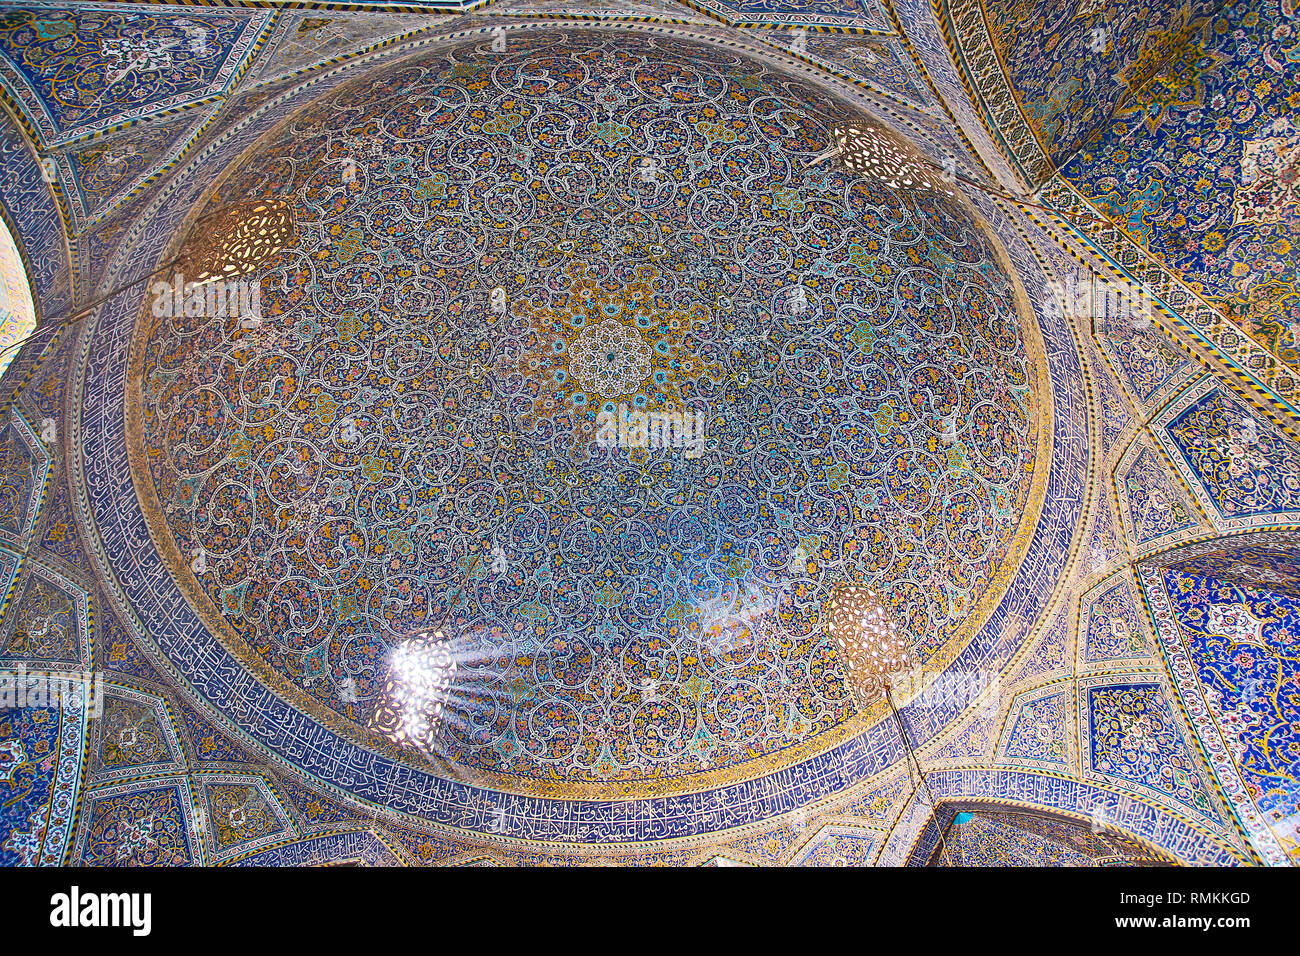 ISFAHAN, IRAN - OCTOBER 21, 2017: Richly decorated dome of Seyed Mosque with stunning tile pattern, Quranic calligraphy, muqarnas and Persian screens, - Stock Image